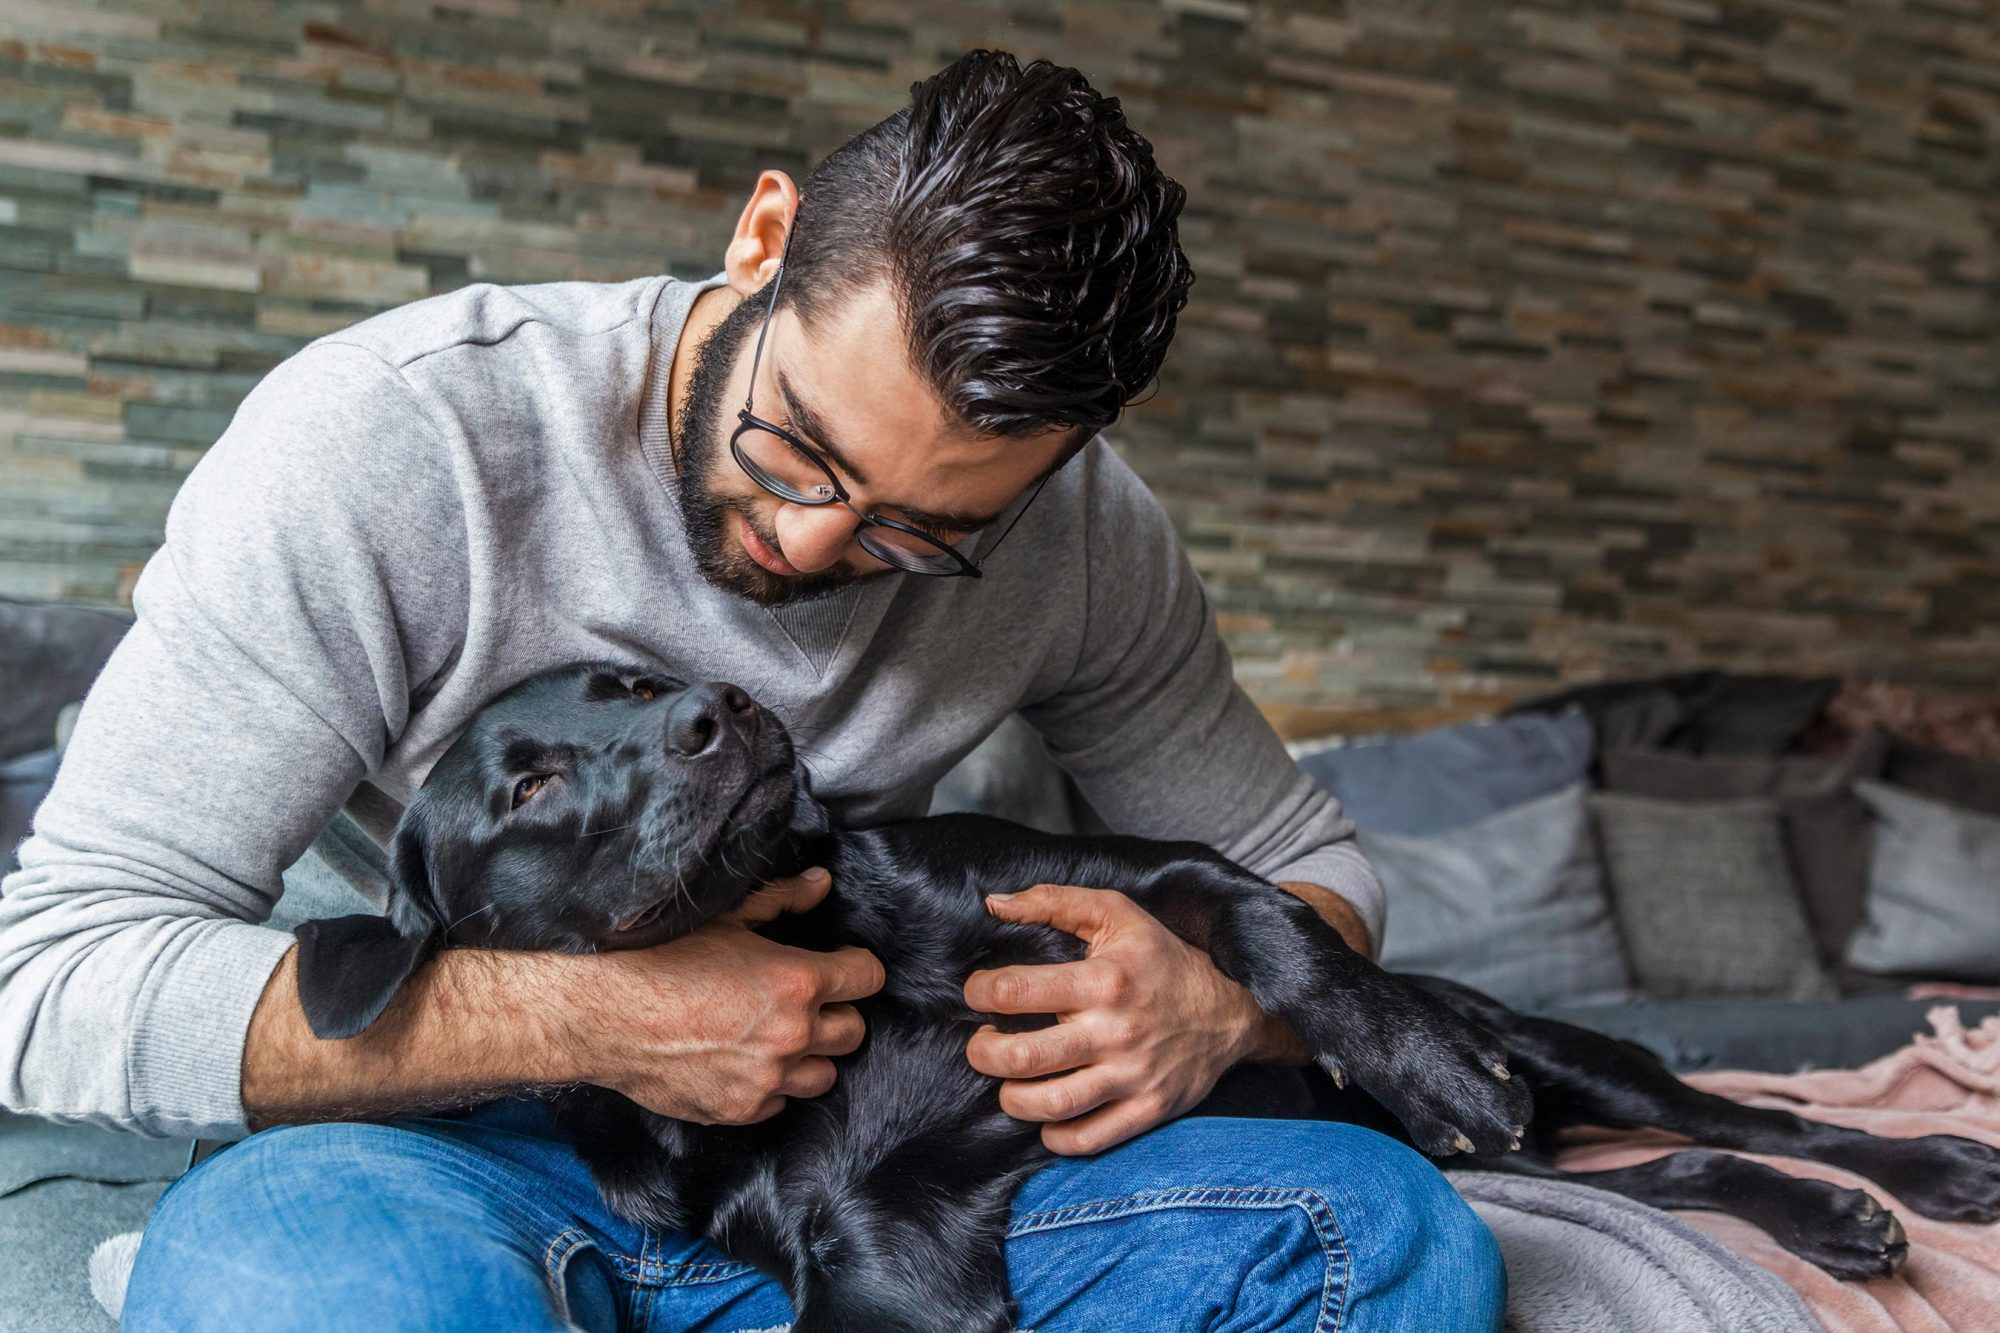 Man cuddling with his dog on the couch at home